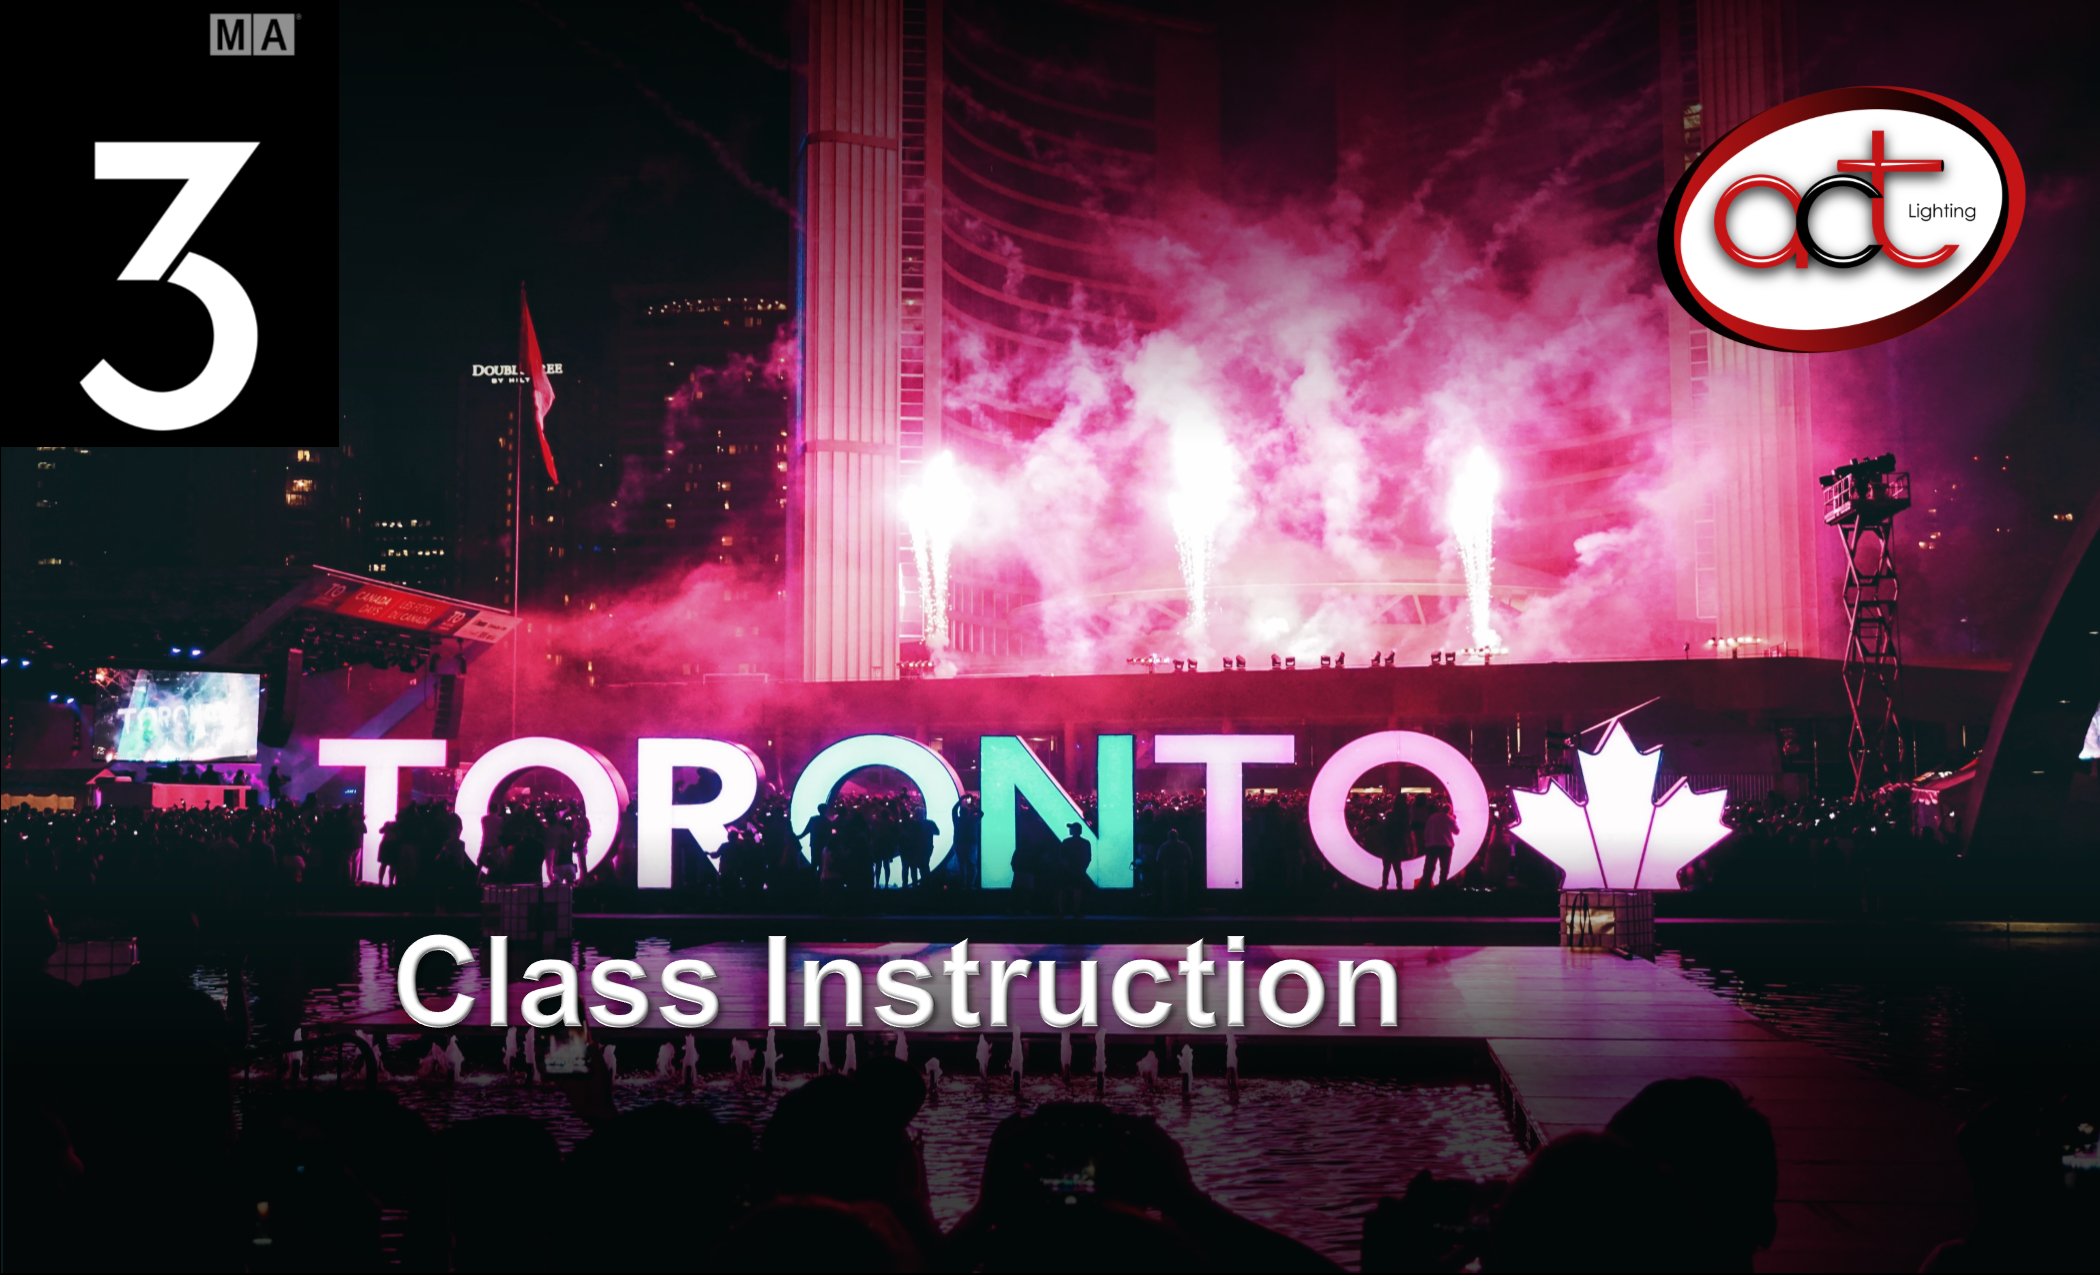 Toronto - Class Instruction